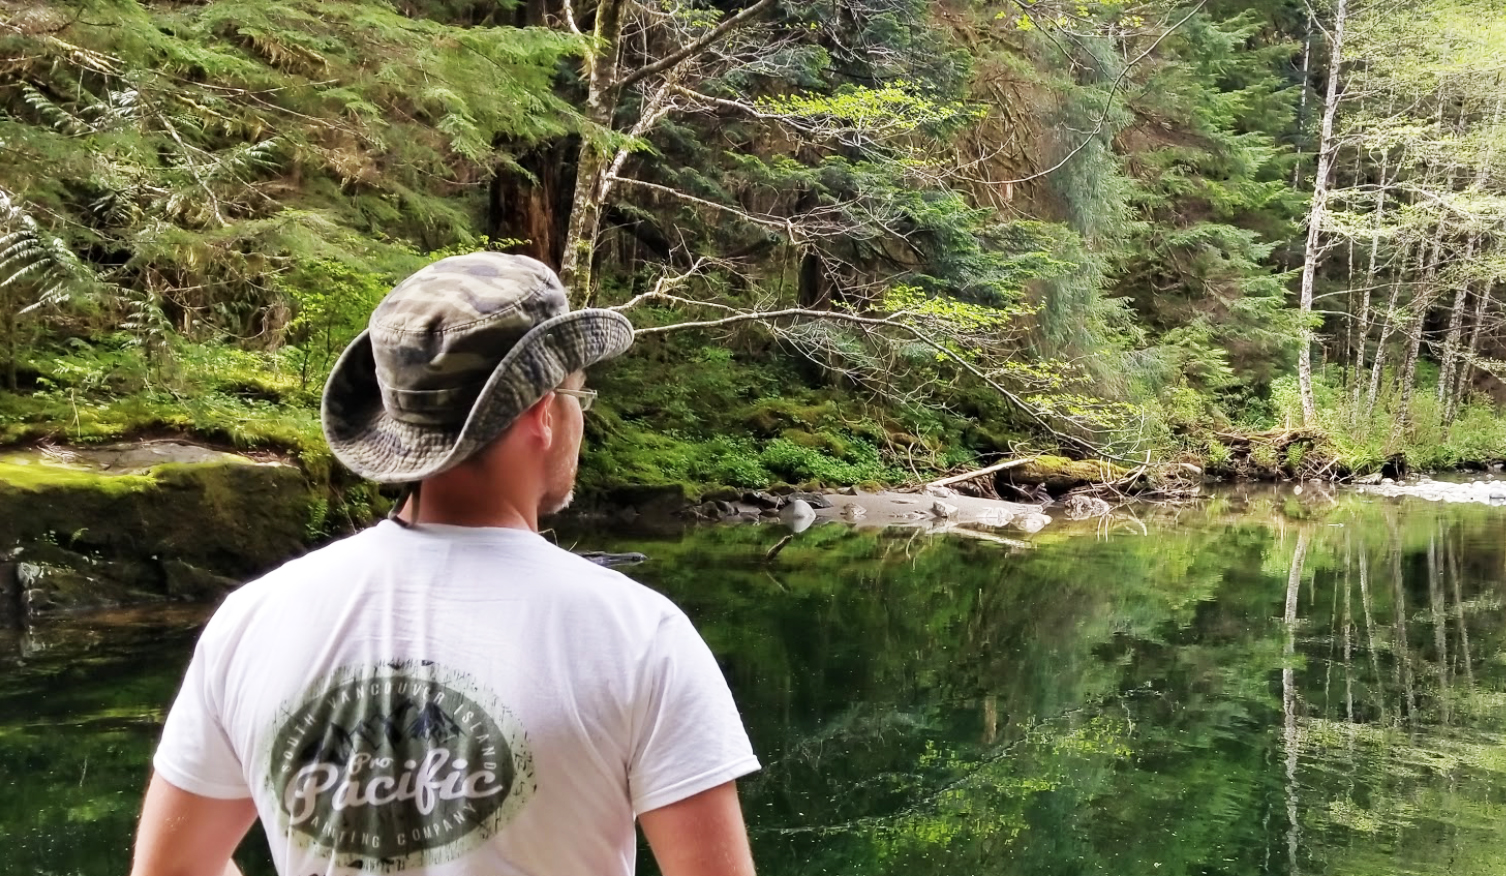 Owner and Operator - James Griffin gathering inspiration from the Carmannah Valley